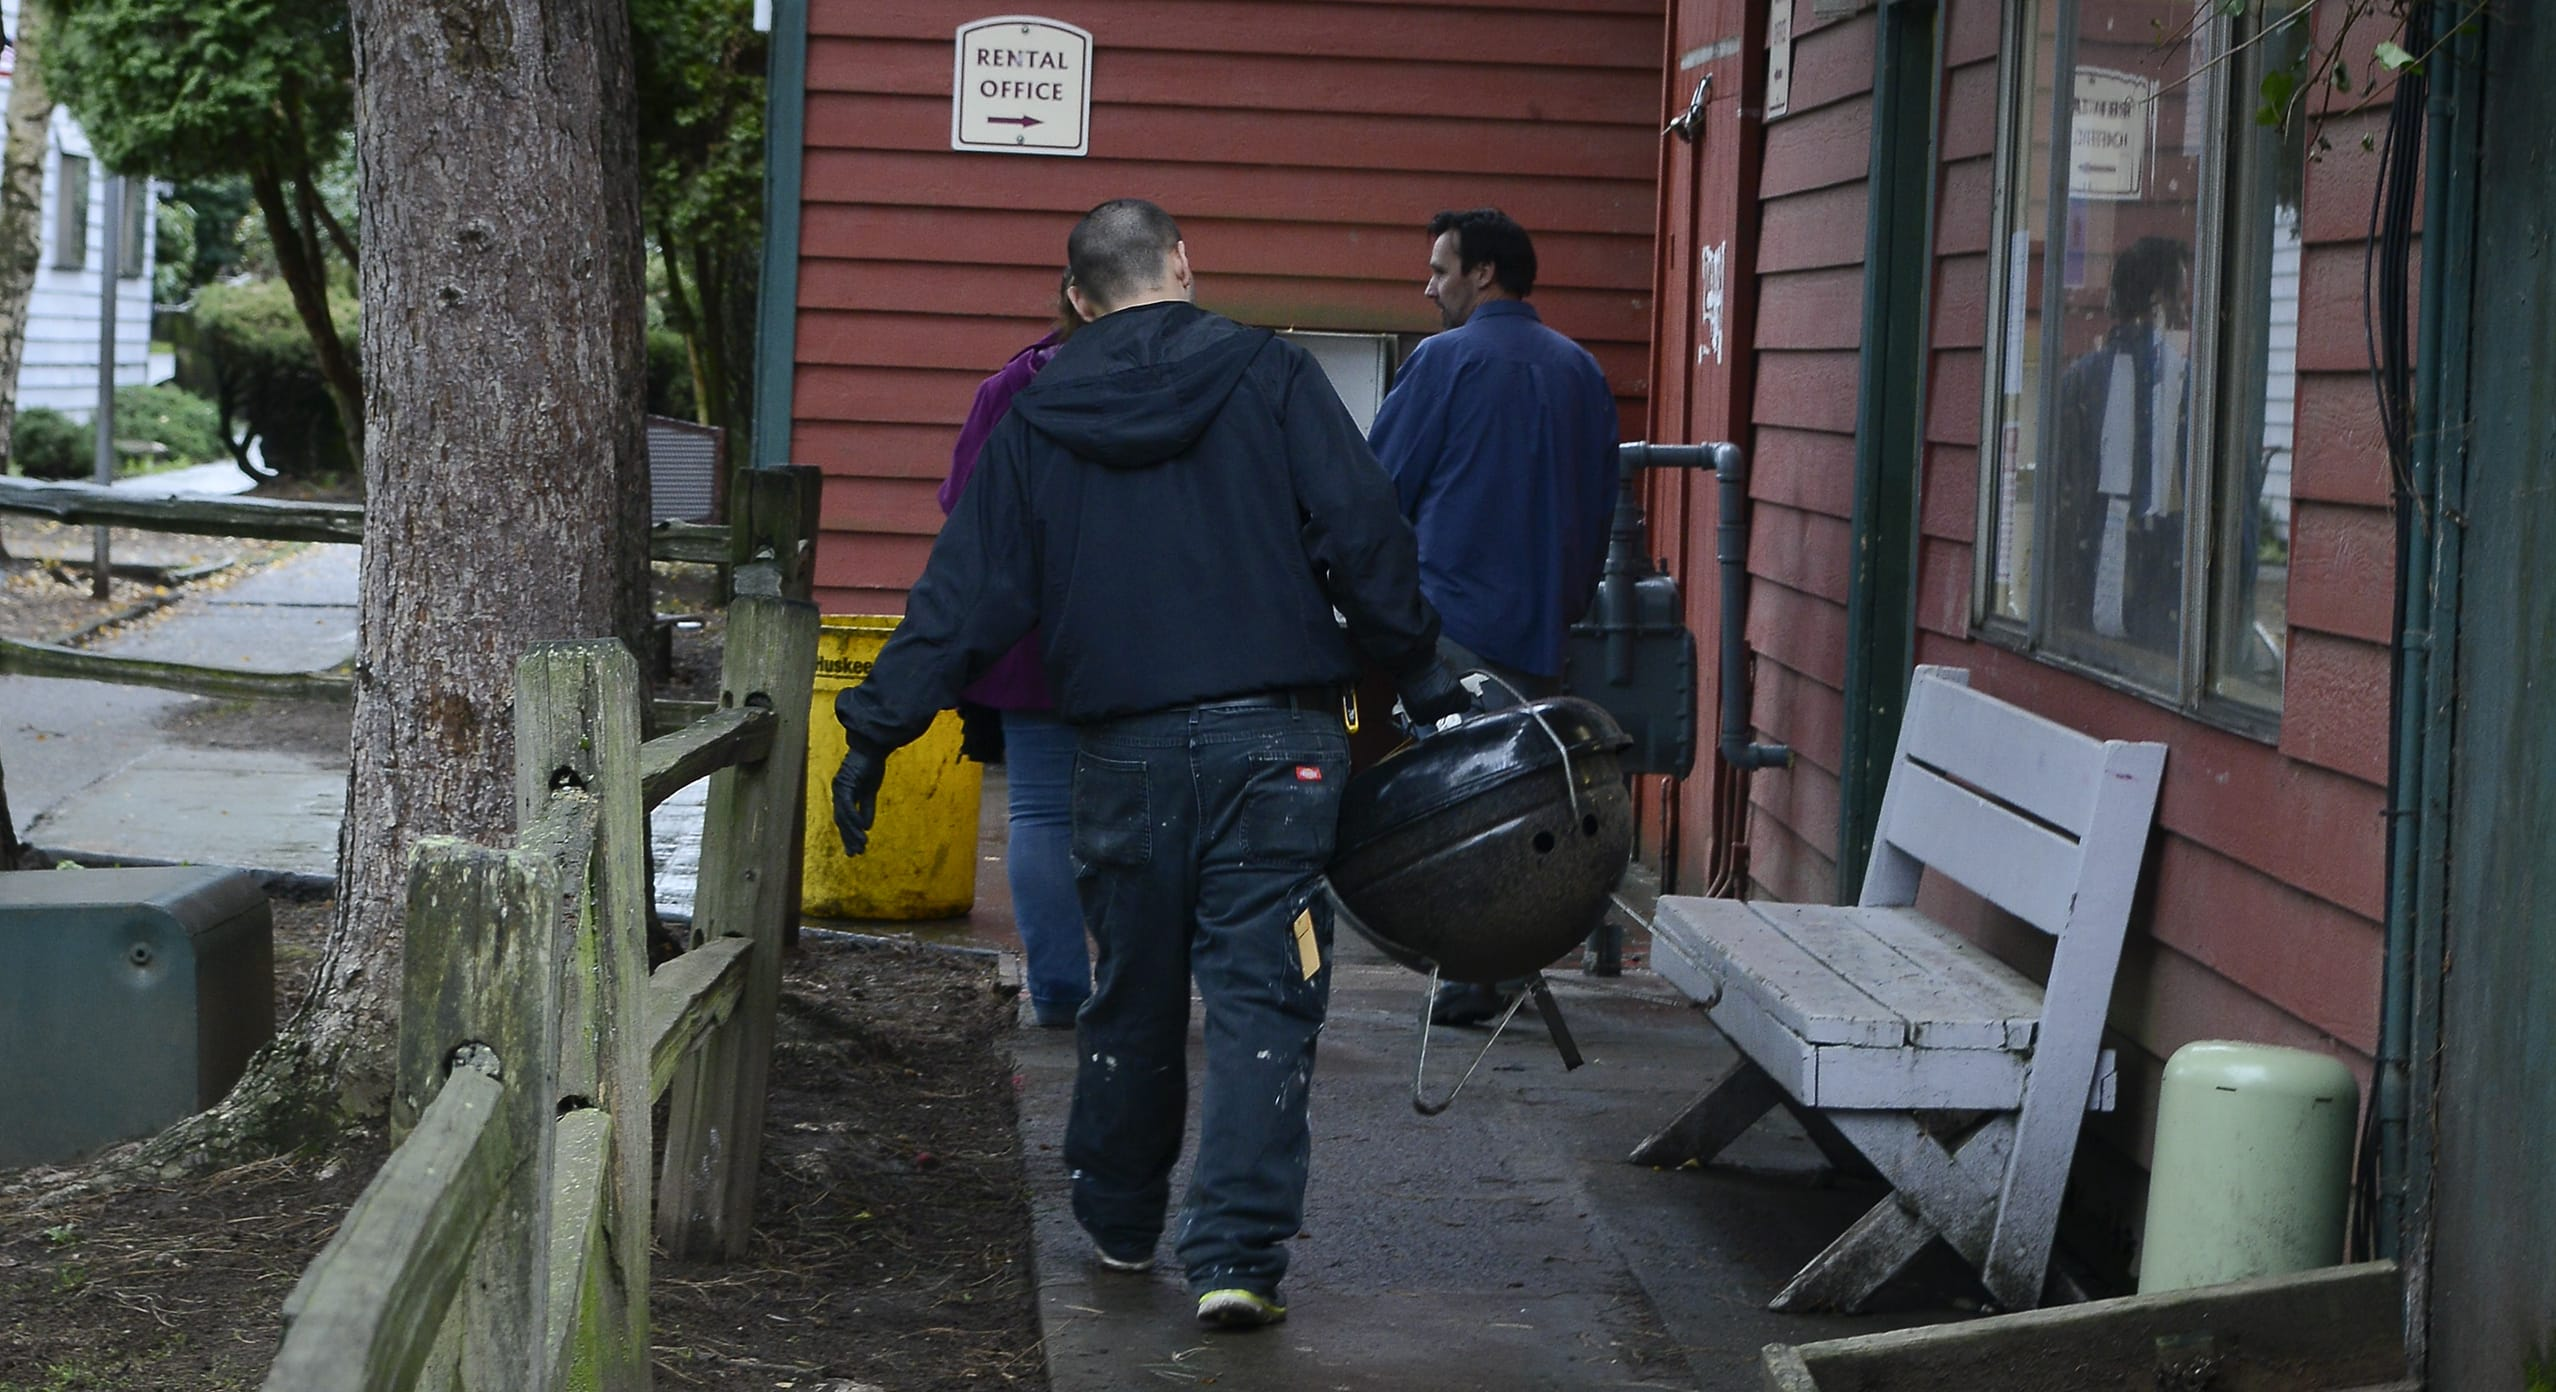 Courtyard Village Apartments residents on Dec. 10 started cleaning up the grounds and removing everything that had been left outside, including personal possessions such as a barbecue grill.